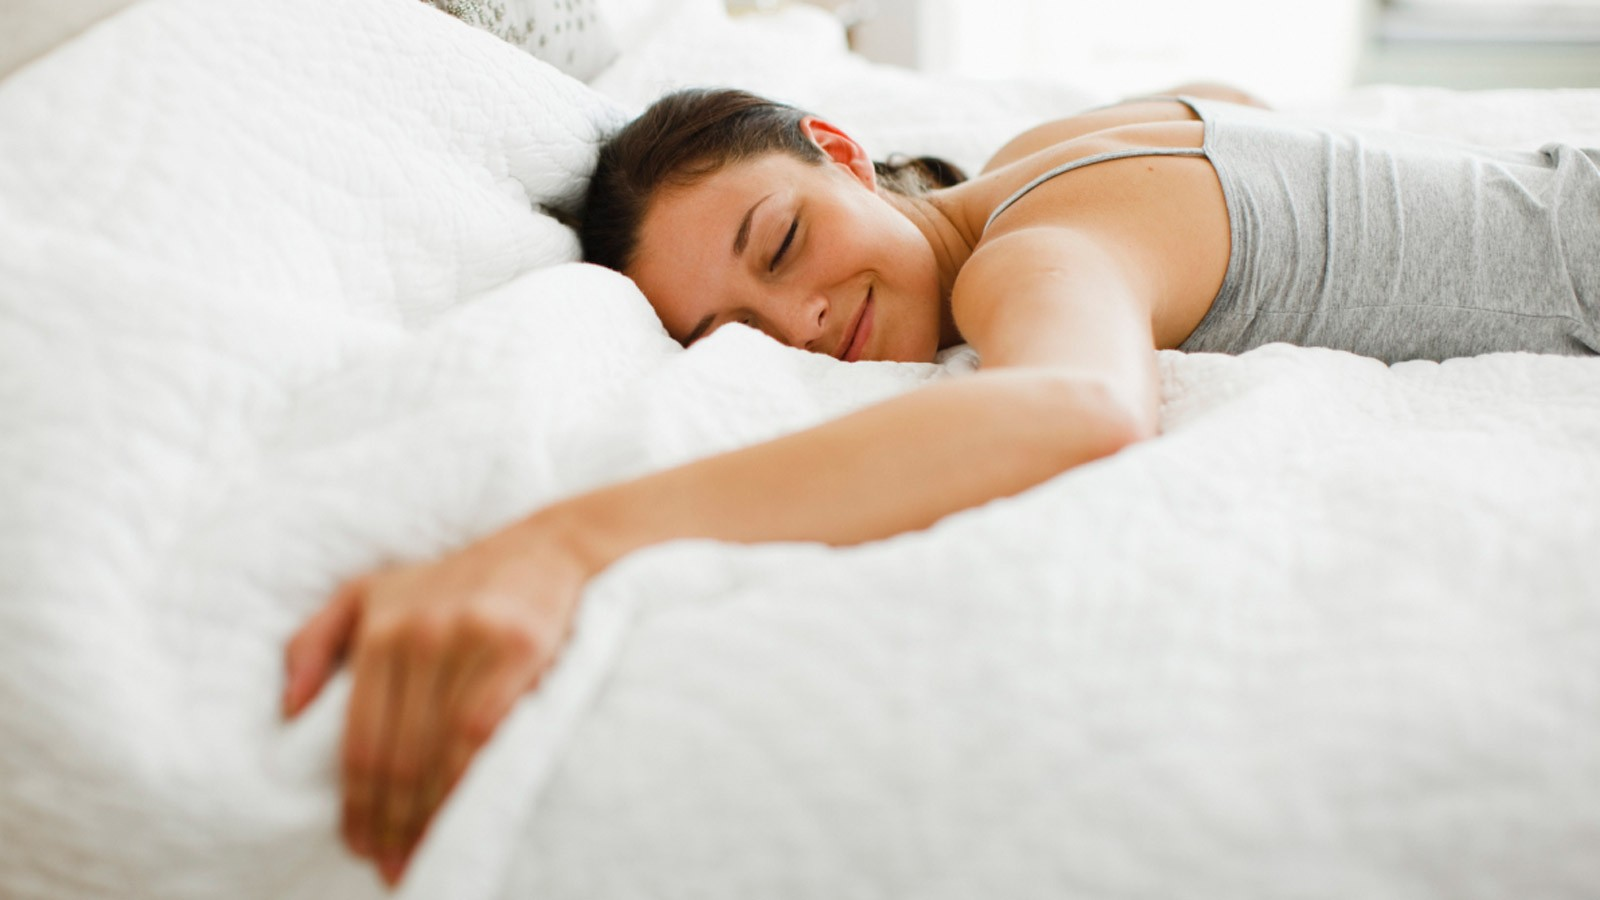 Feeling fatigued? Give yourself an energy boost by sleeping right